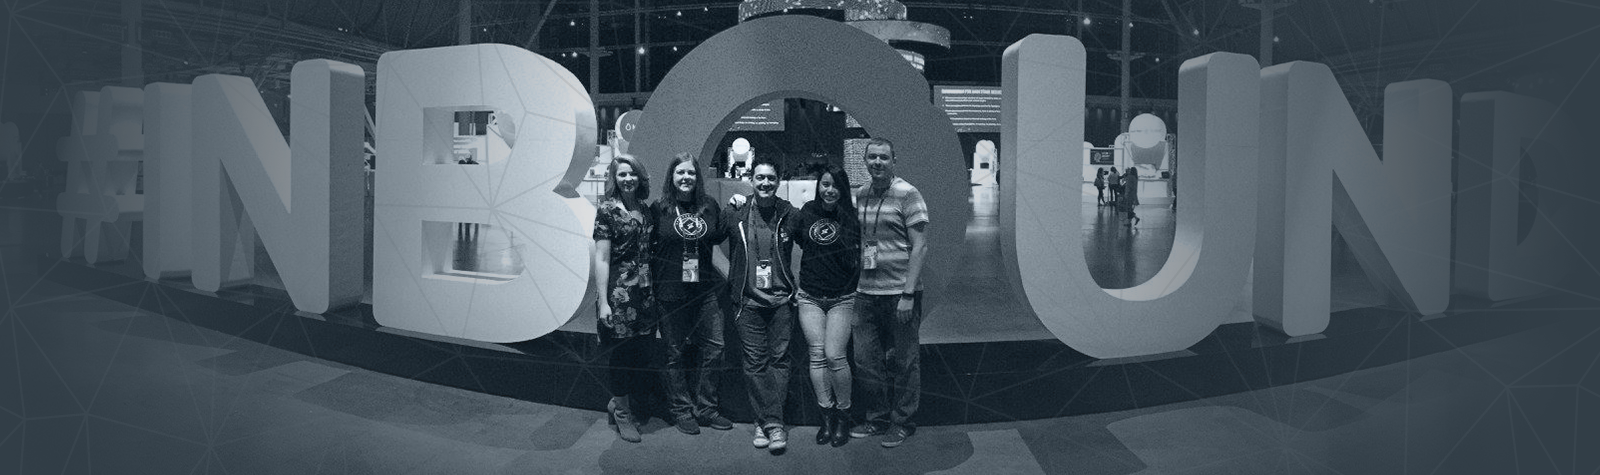 Inbound Recap: Sponsoring a Booth—An Outbound Strategy